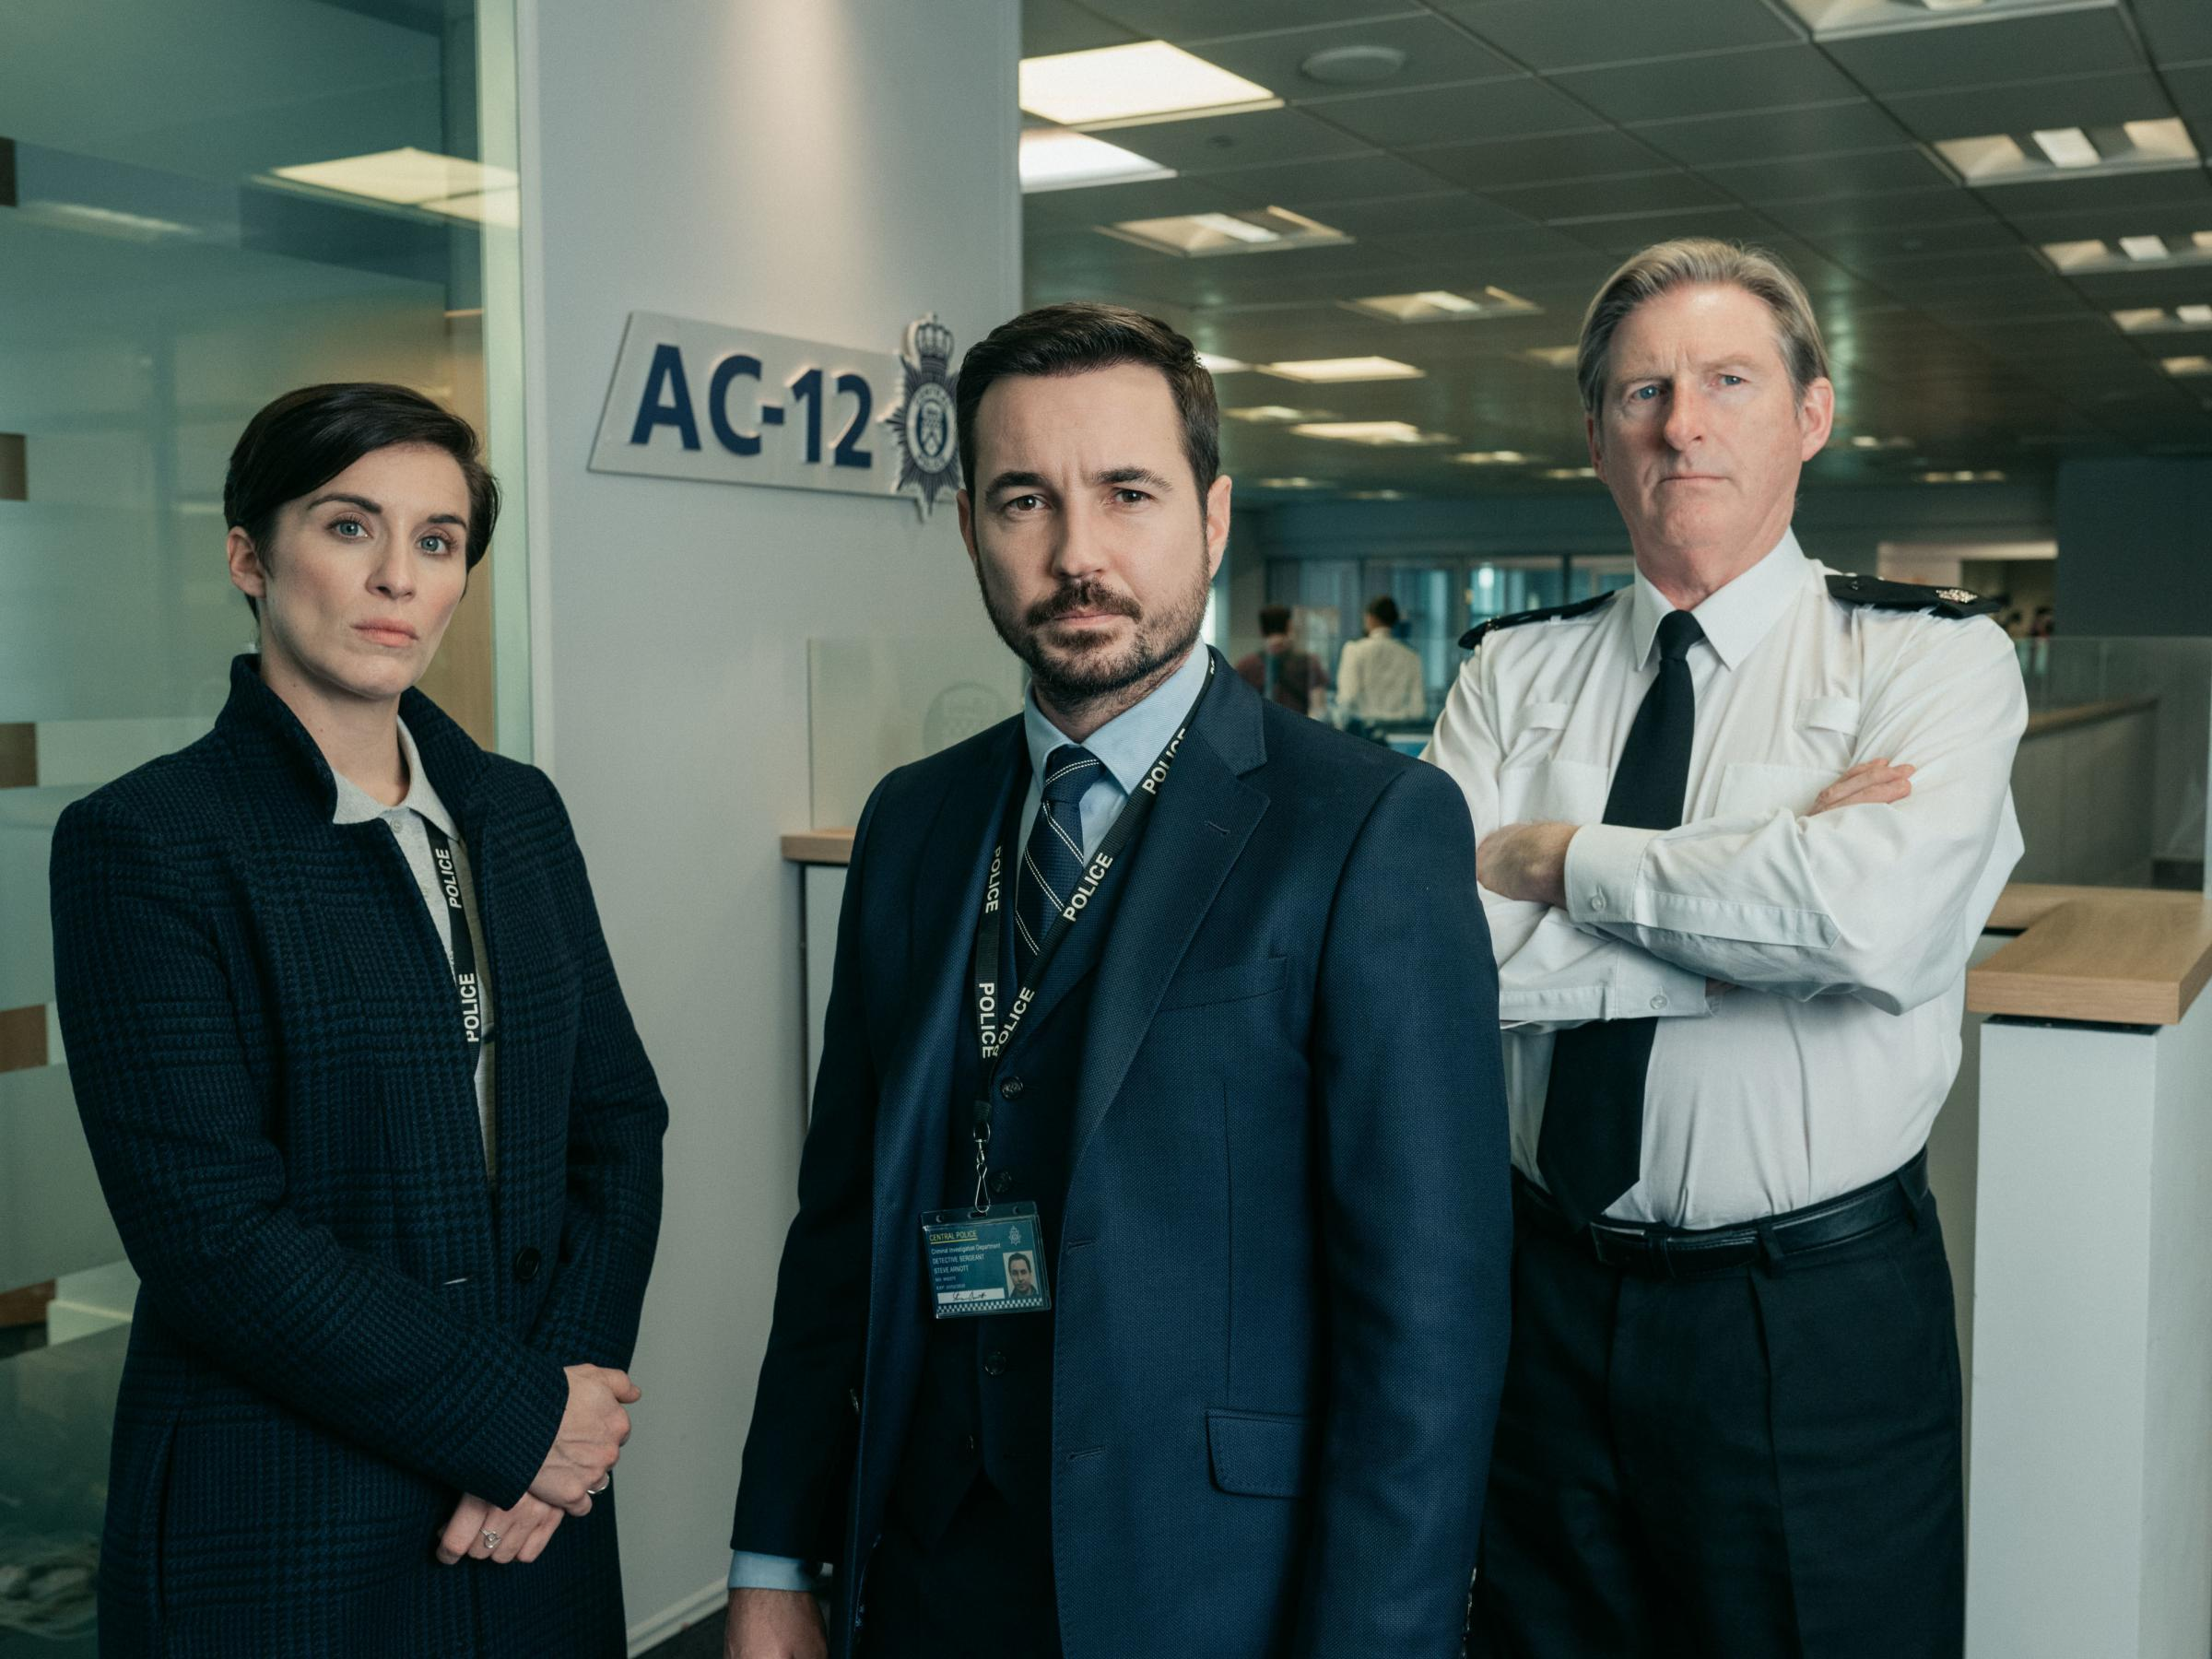 Line of Duty stars Vicky McClure as Detective Sergeant Kate Fleming, Adrian Dunbar as Superintendent Ted Hastings and Martin Compston as Detective Sergeant Steve Arnott.